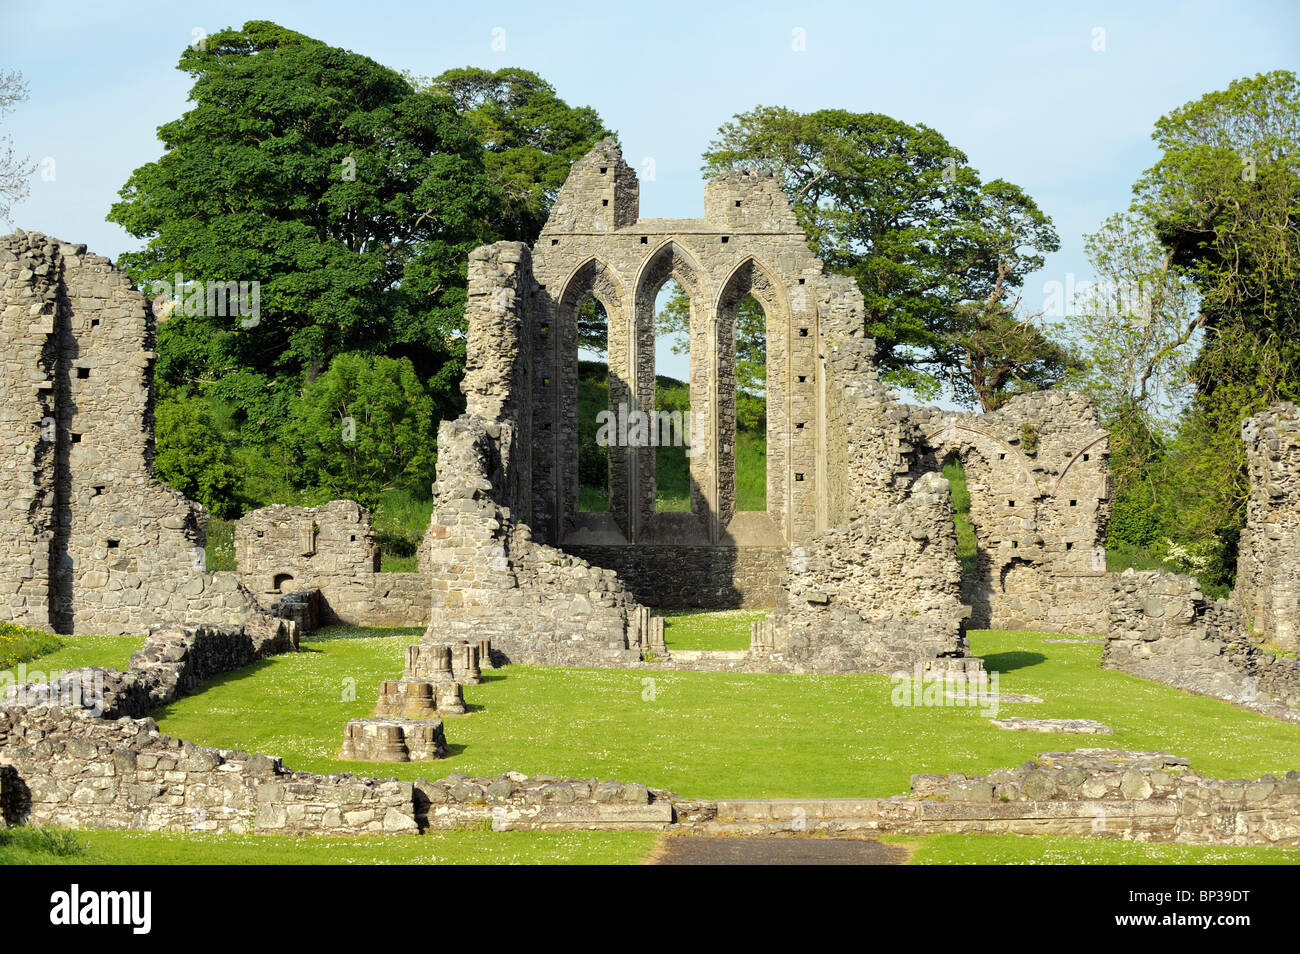 Inch Abbey near Downpatrick, County Down, Northern Ireland. Norman Cistercian abbey founded 1180 by John de Courcy. Stock Photo